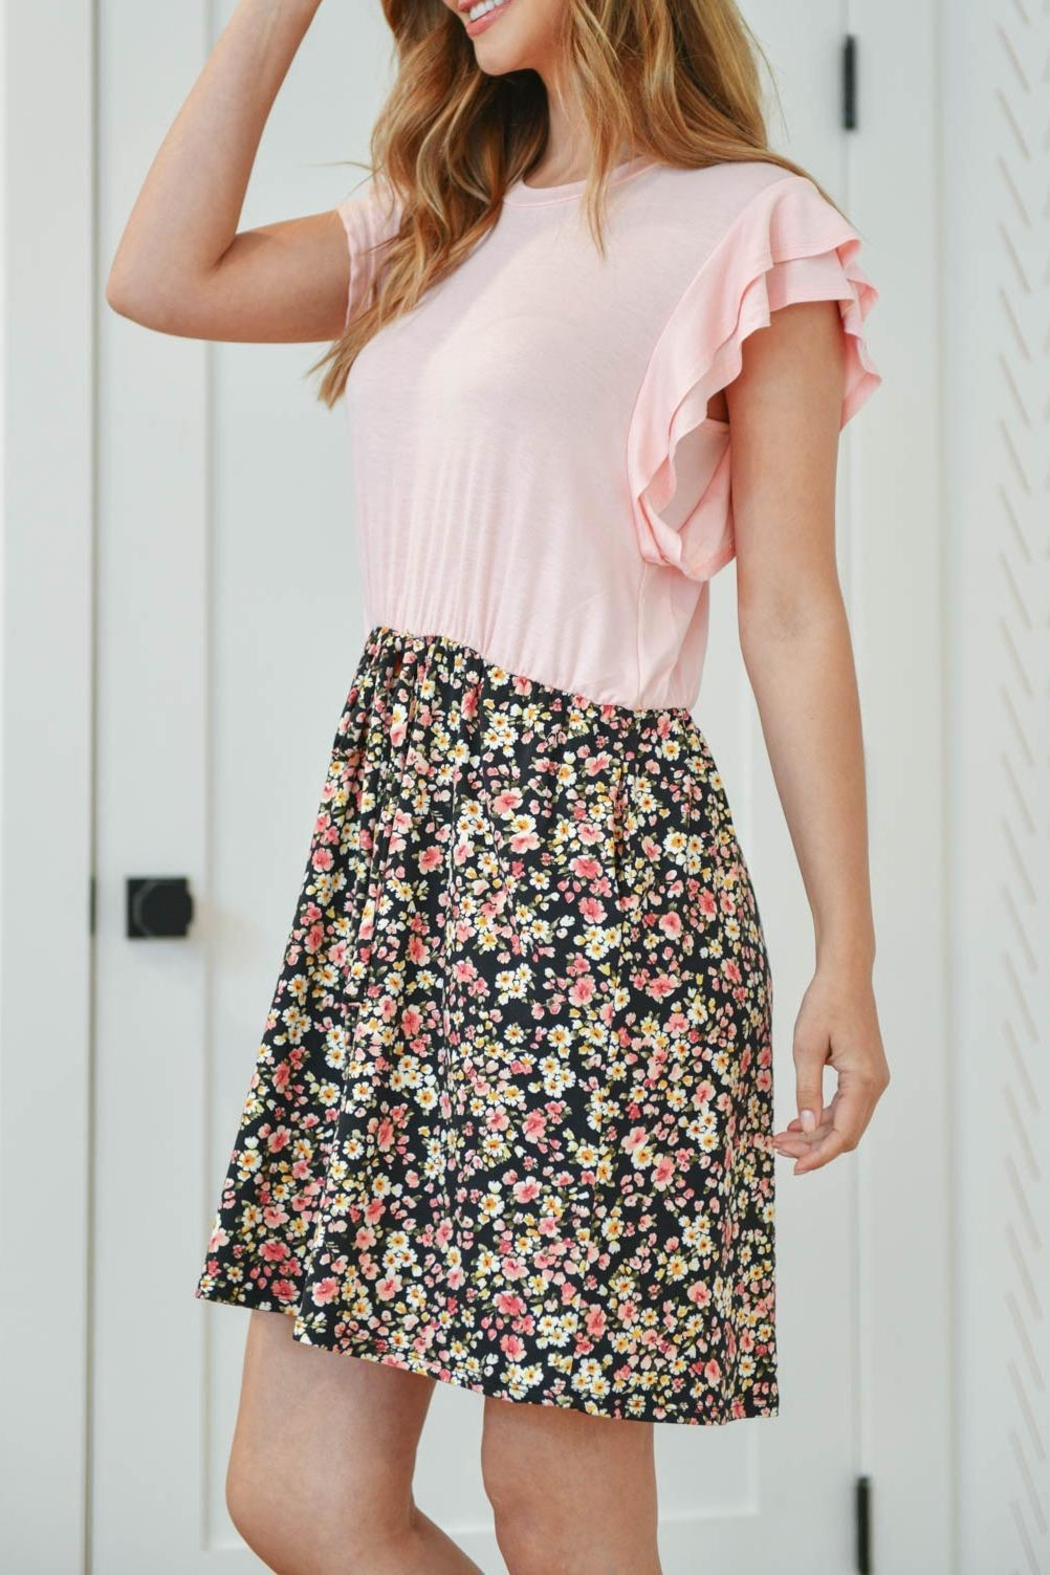 Riah Fashion Cap-Sleeve-Solid-Top-Floral-Contrast-Dress - Back Cropped Image